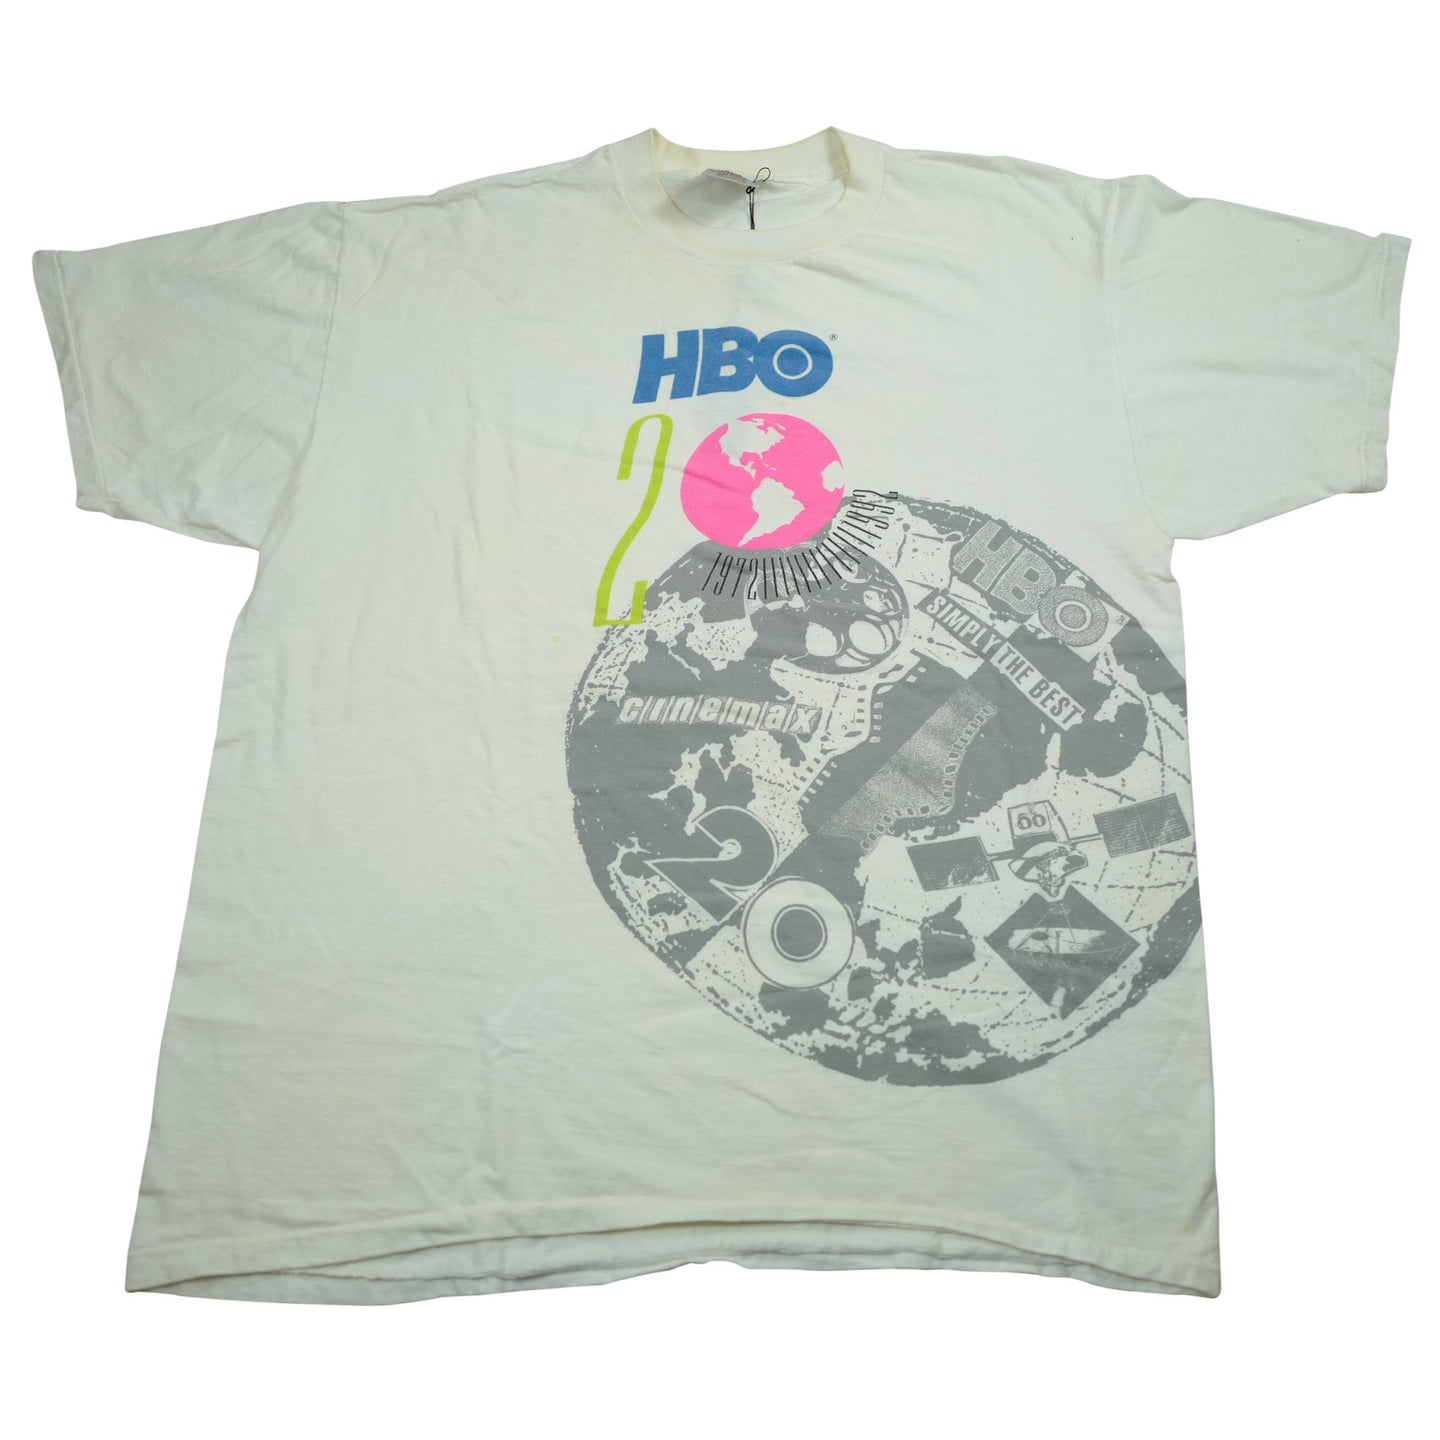 Vintage 90's 20th Anniversary HBO Tee